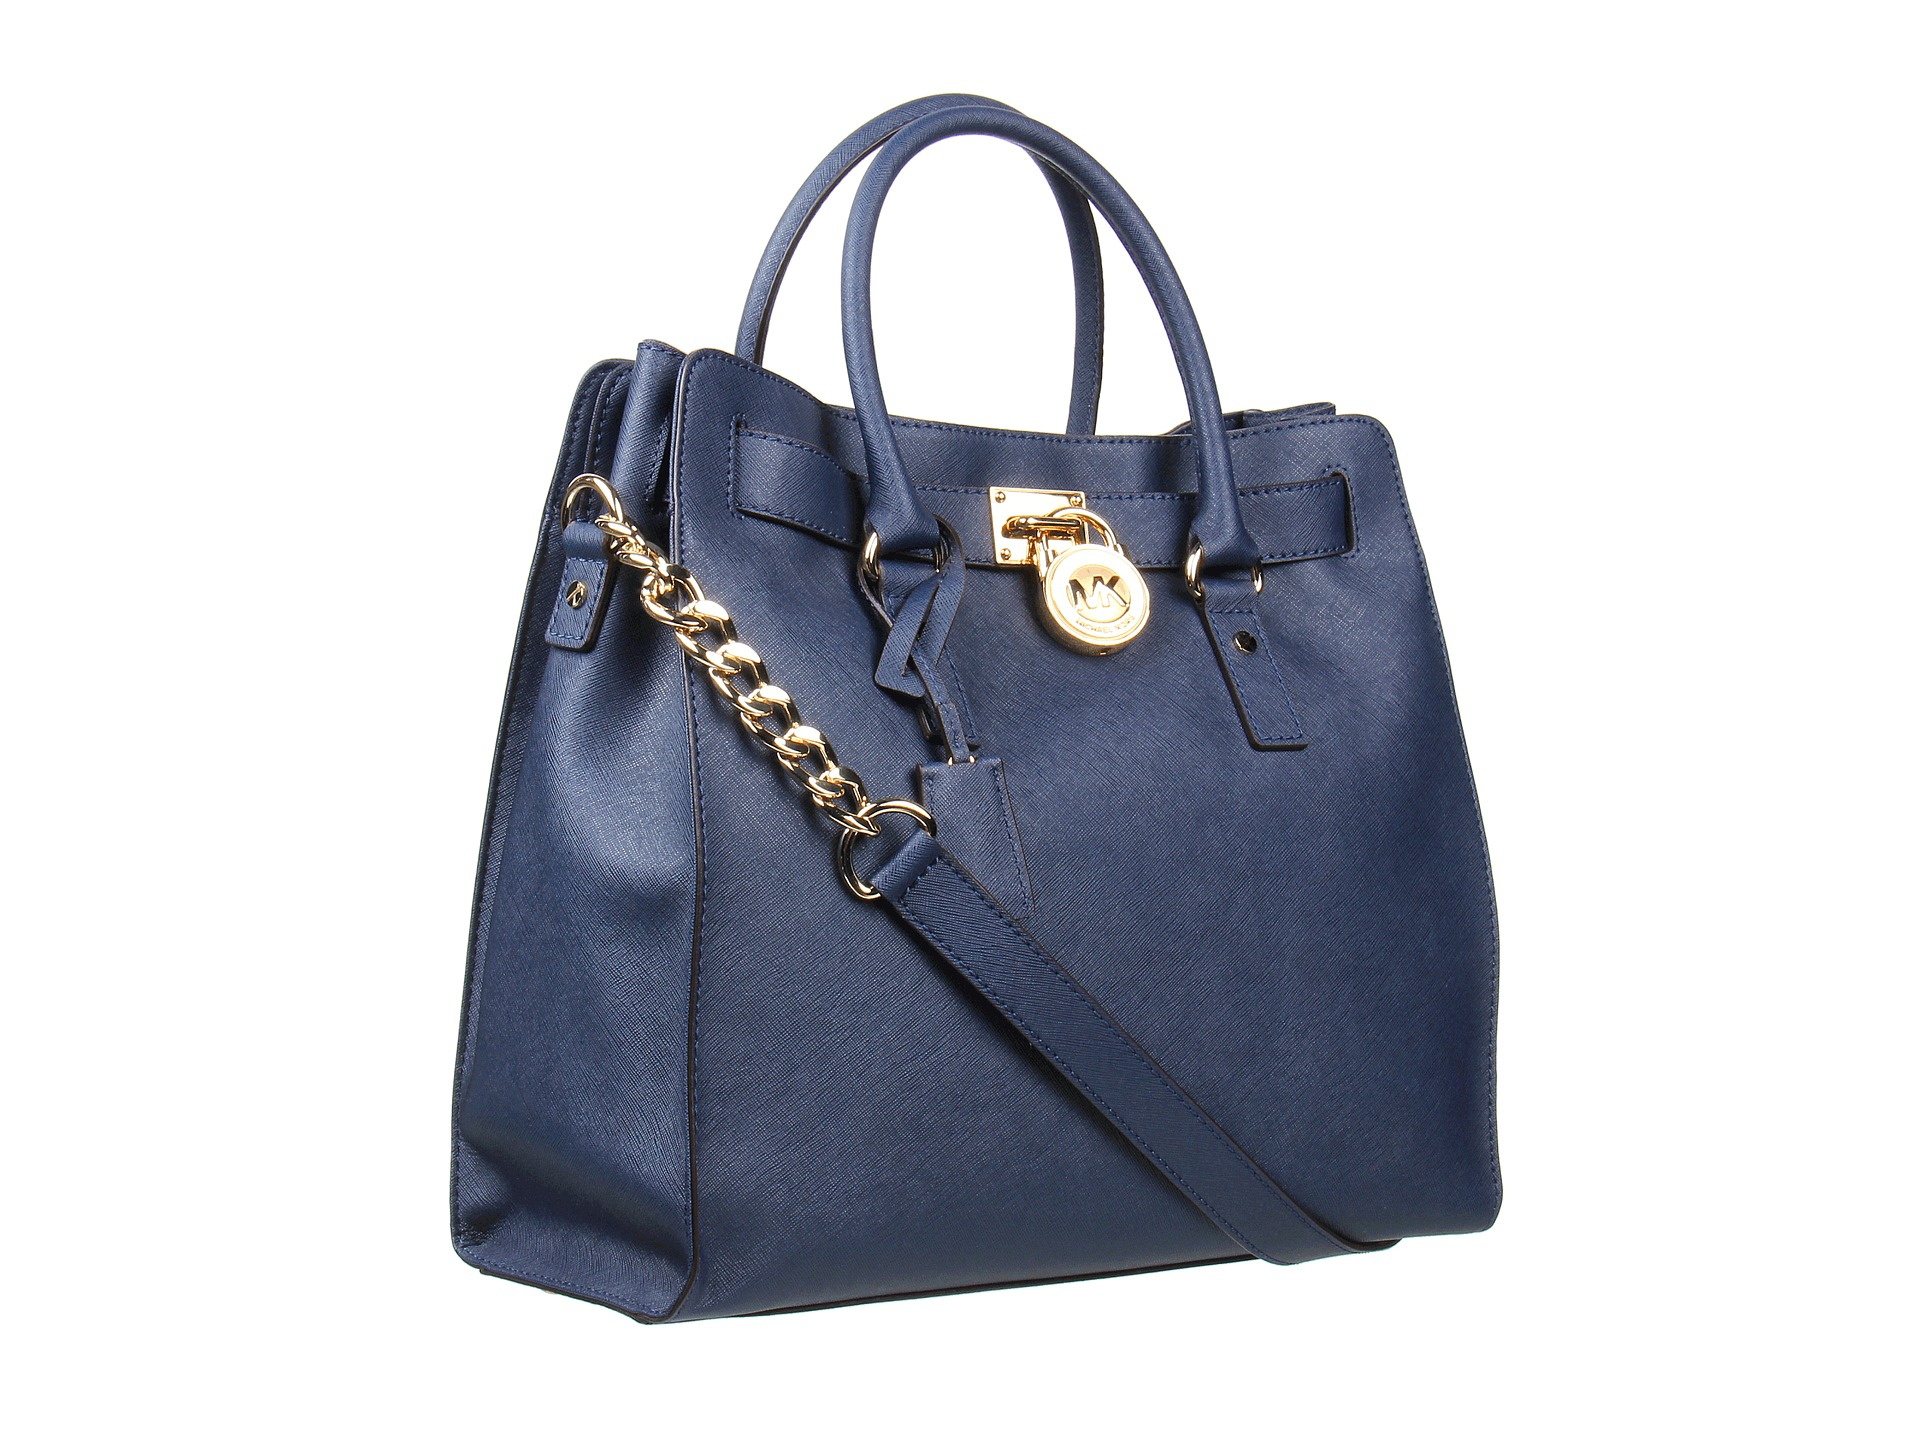 7c7bc0b2363ab Lyst - MICHAEL Michael Kors Hamilton Large North south Tote in Blue